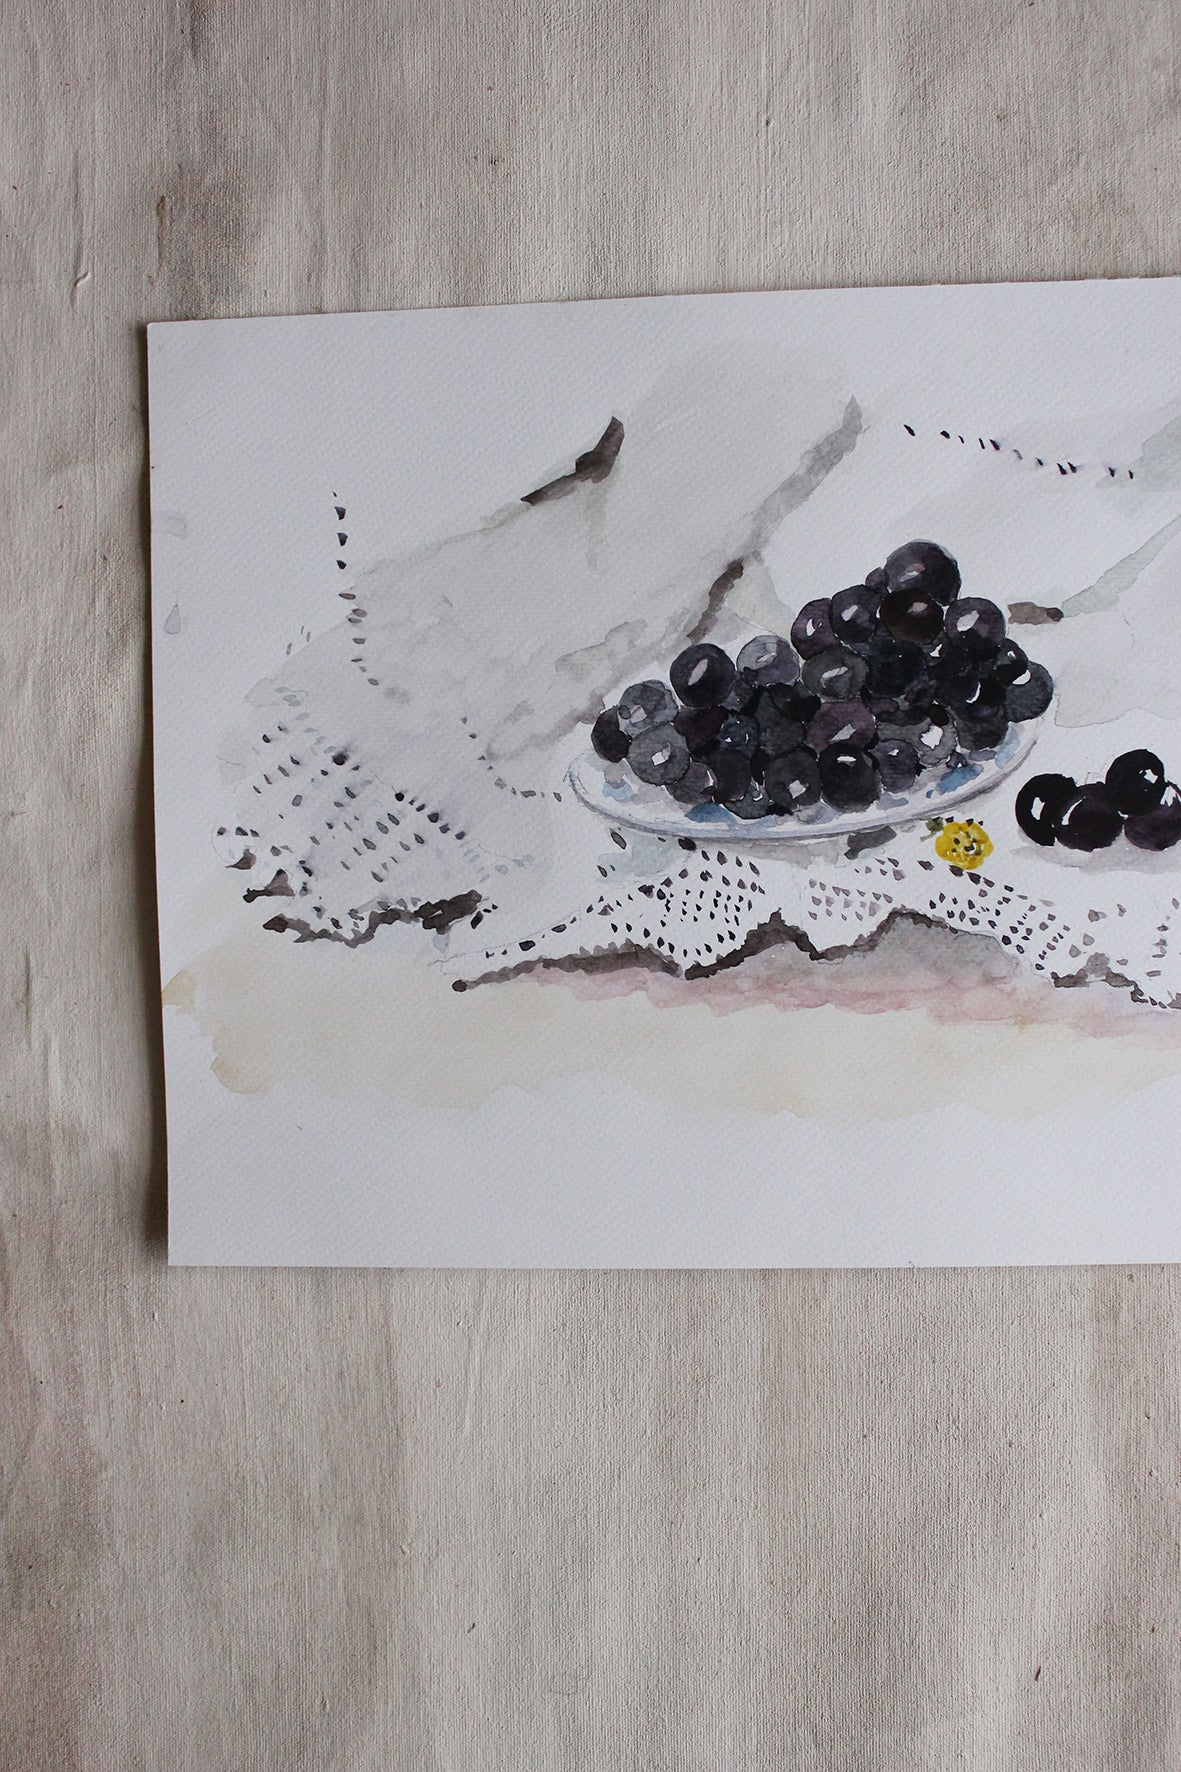 Still Life - Grapes and Lace